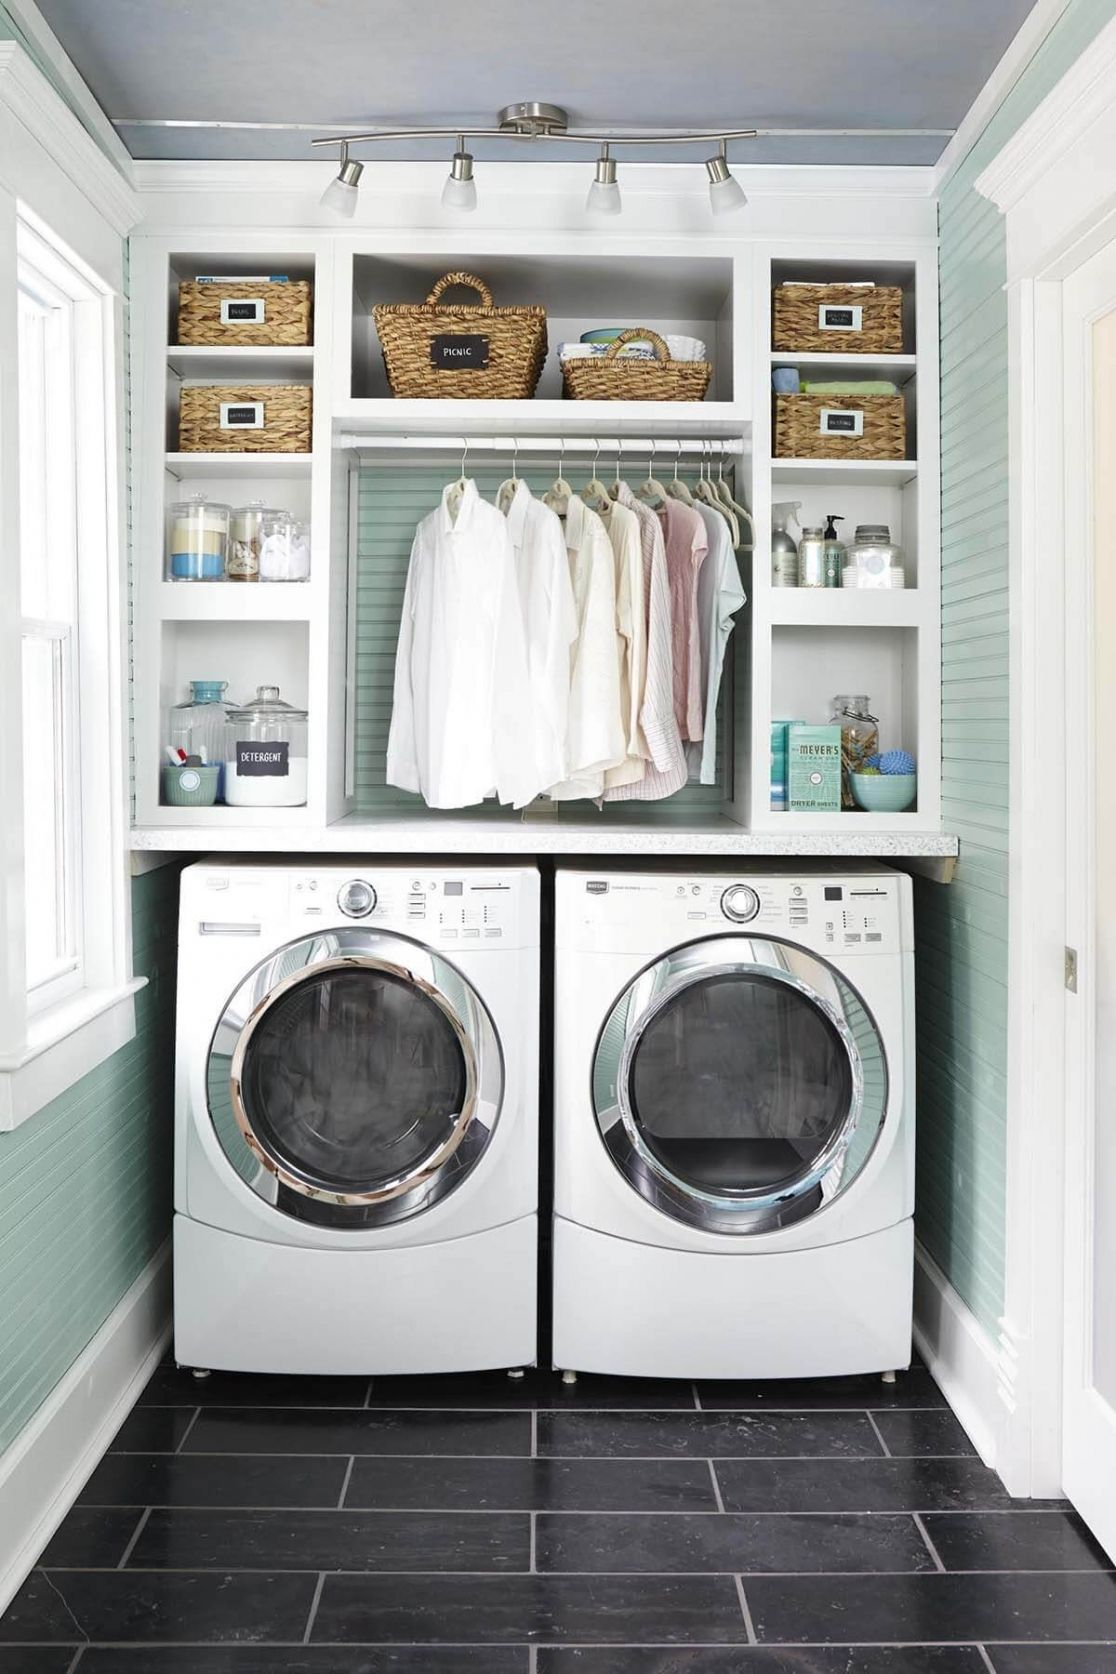 15 Inspiring Laundry Room Ideas for Small Spaces images